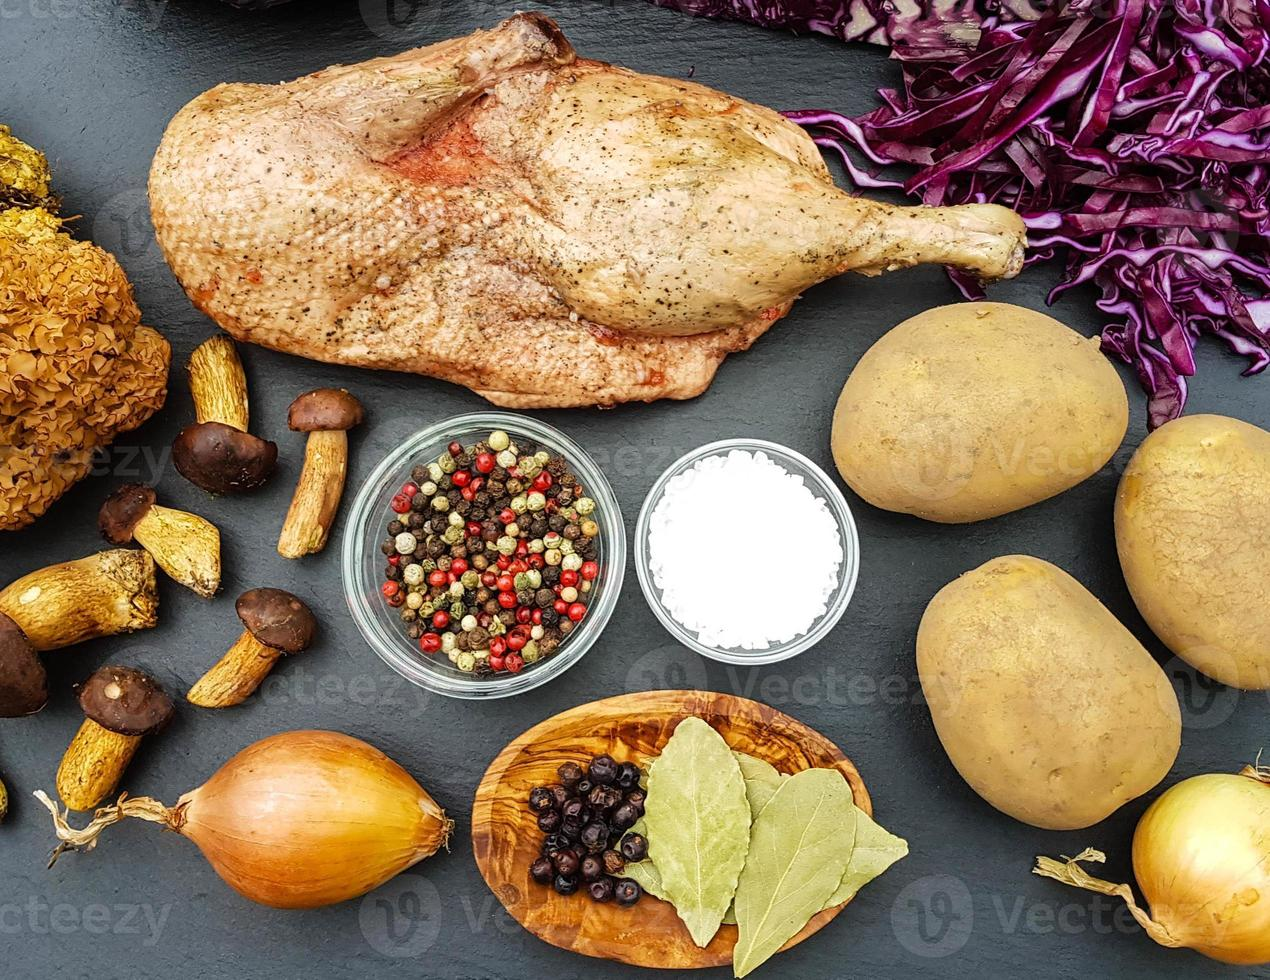 Baked Duck with red cabbage and forest mushrooms photo